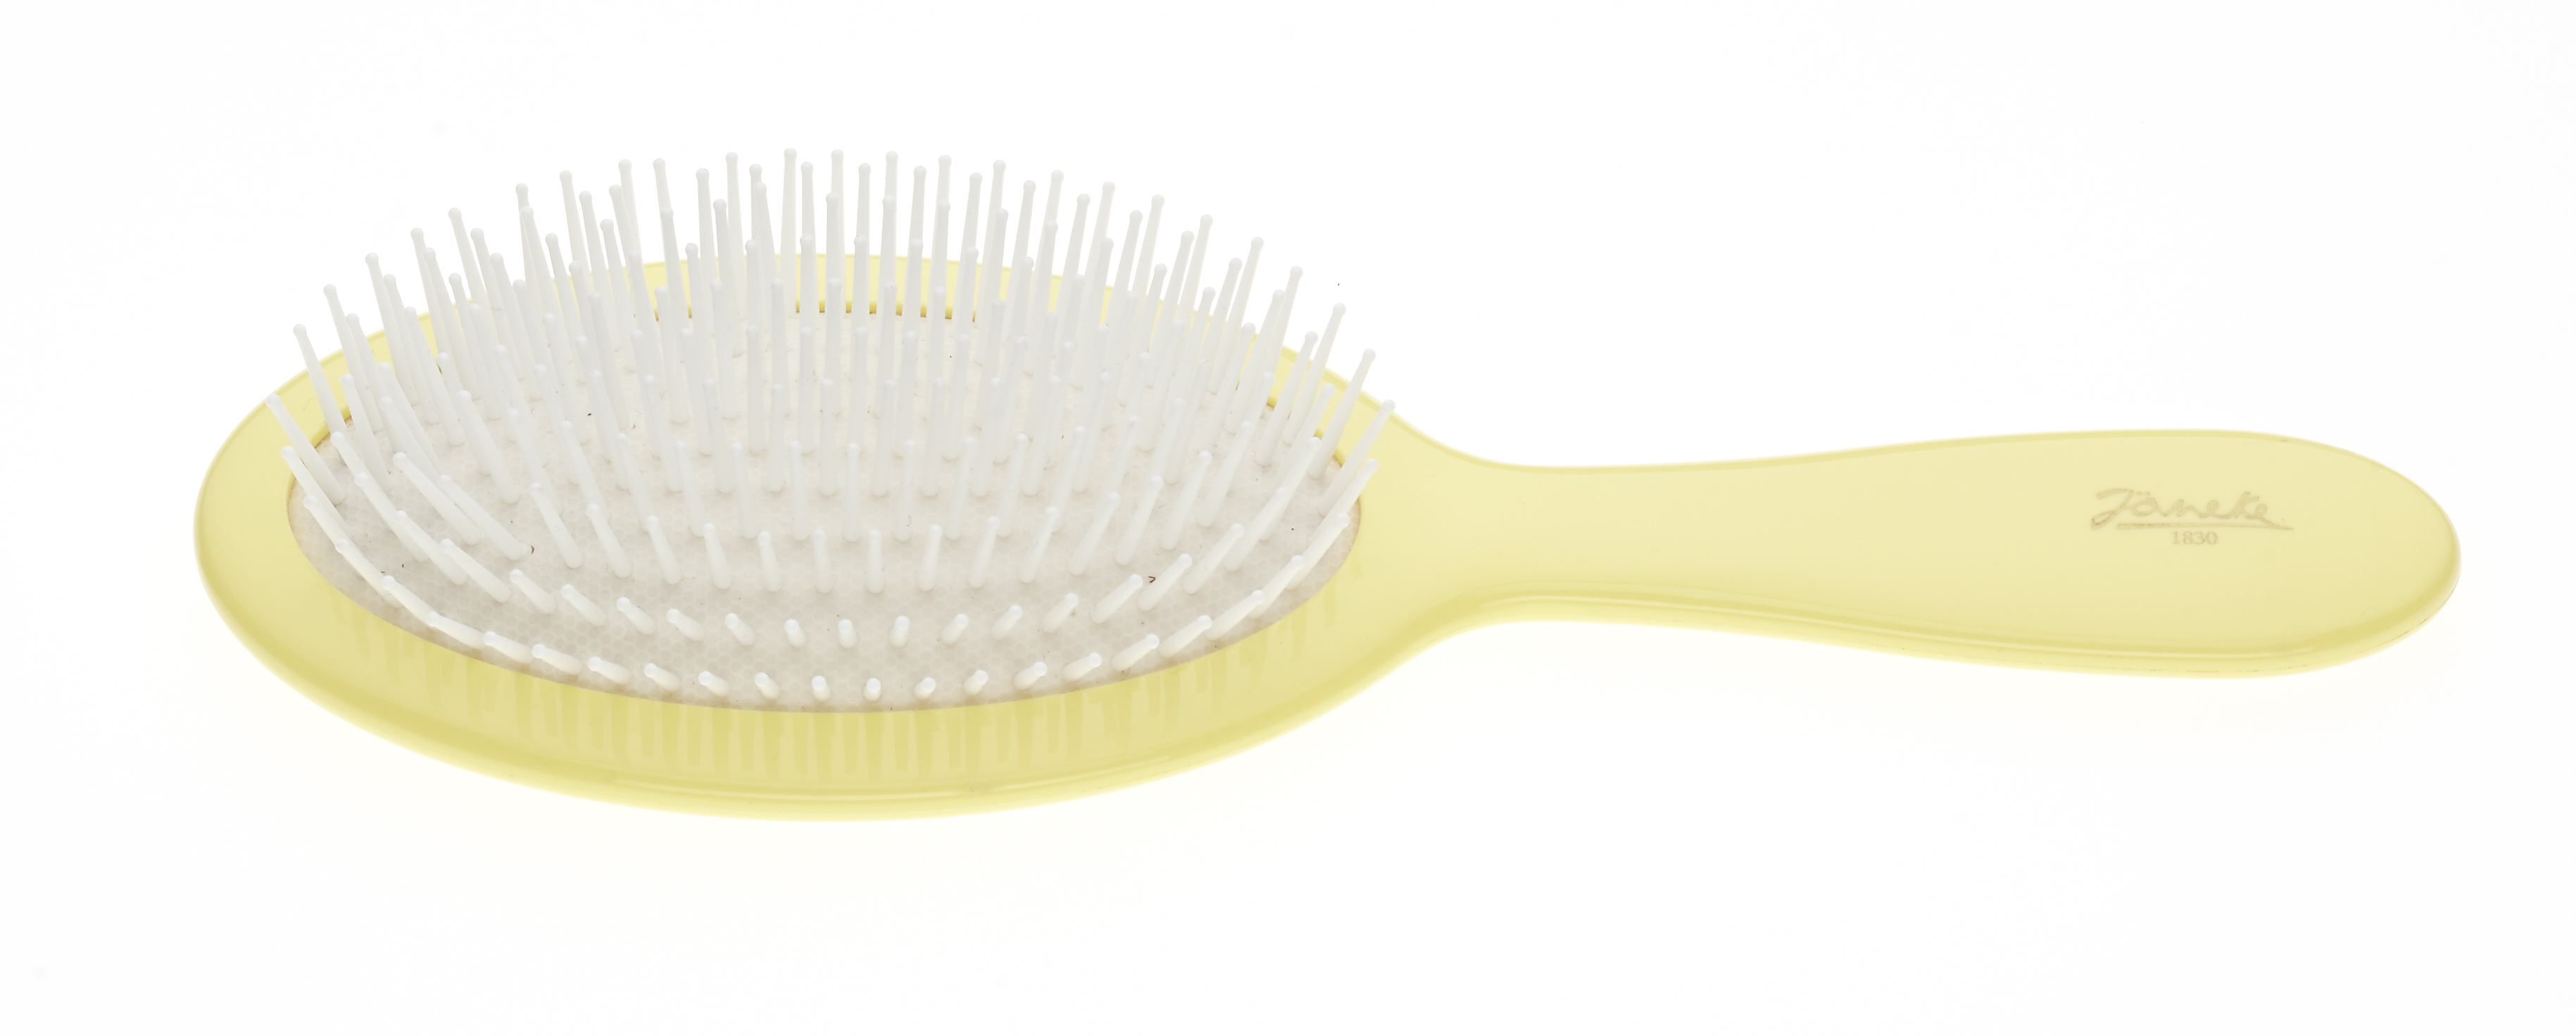 Oval pneumatic hairbrush, big Cod. 93SP22 GIA